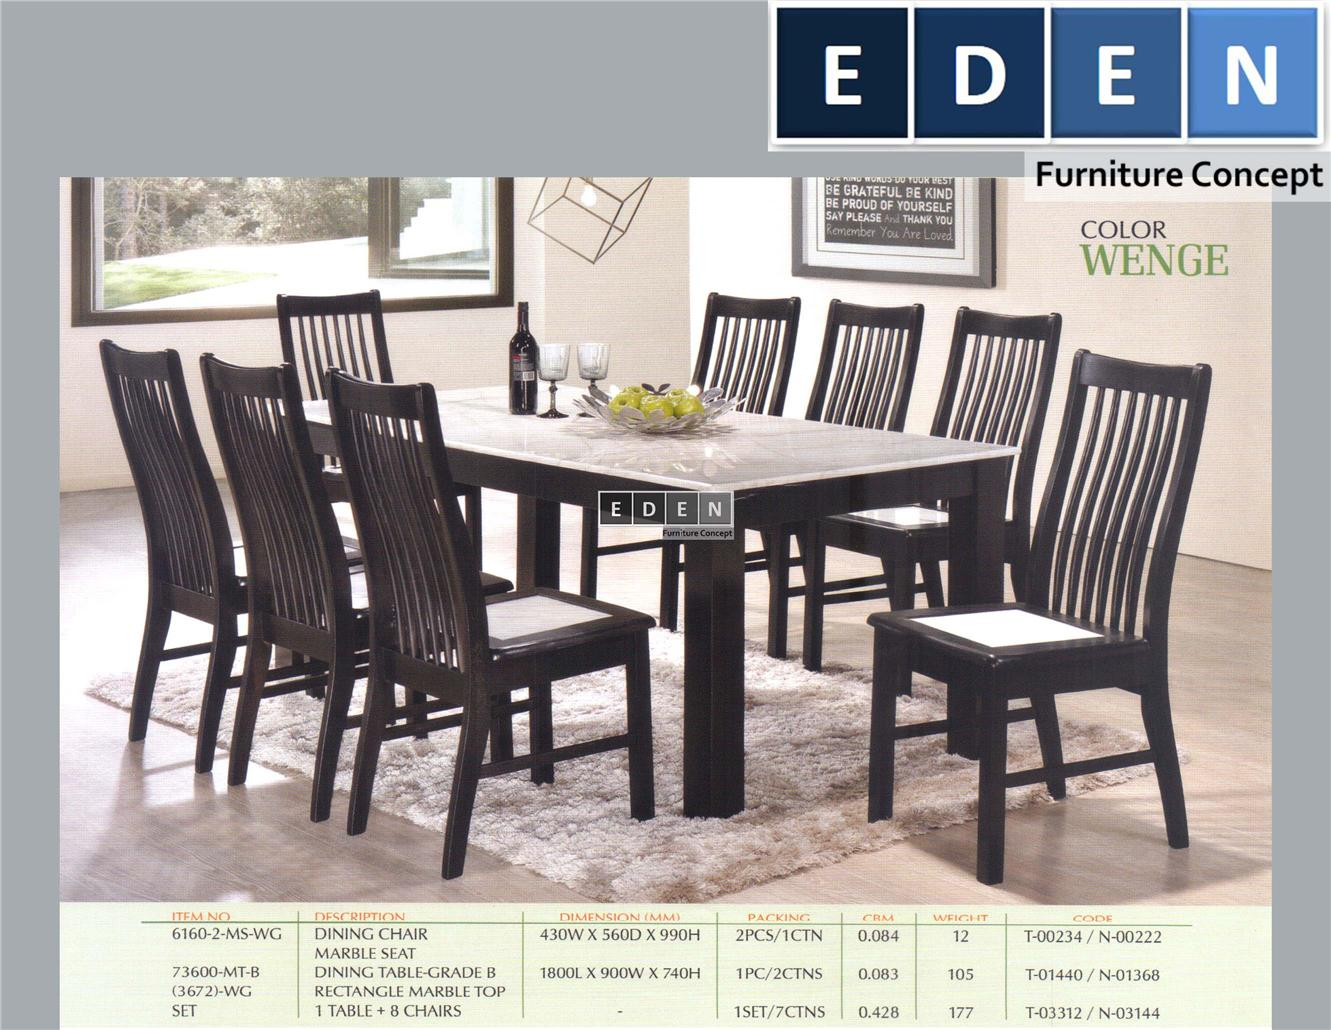 FURNITURE MALAYSIA KITCHEN DINING end 5252017 215 AM : furniture malaysia kitchen dining table set meja makan set 73600 kykstore 1505 26 KYKstore3 from www.lelong.com.my size 1331 x 1030 jpeg 198kB